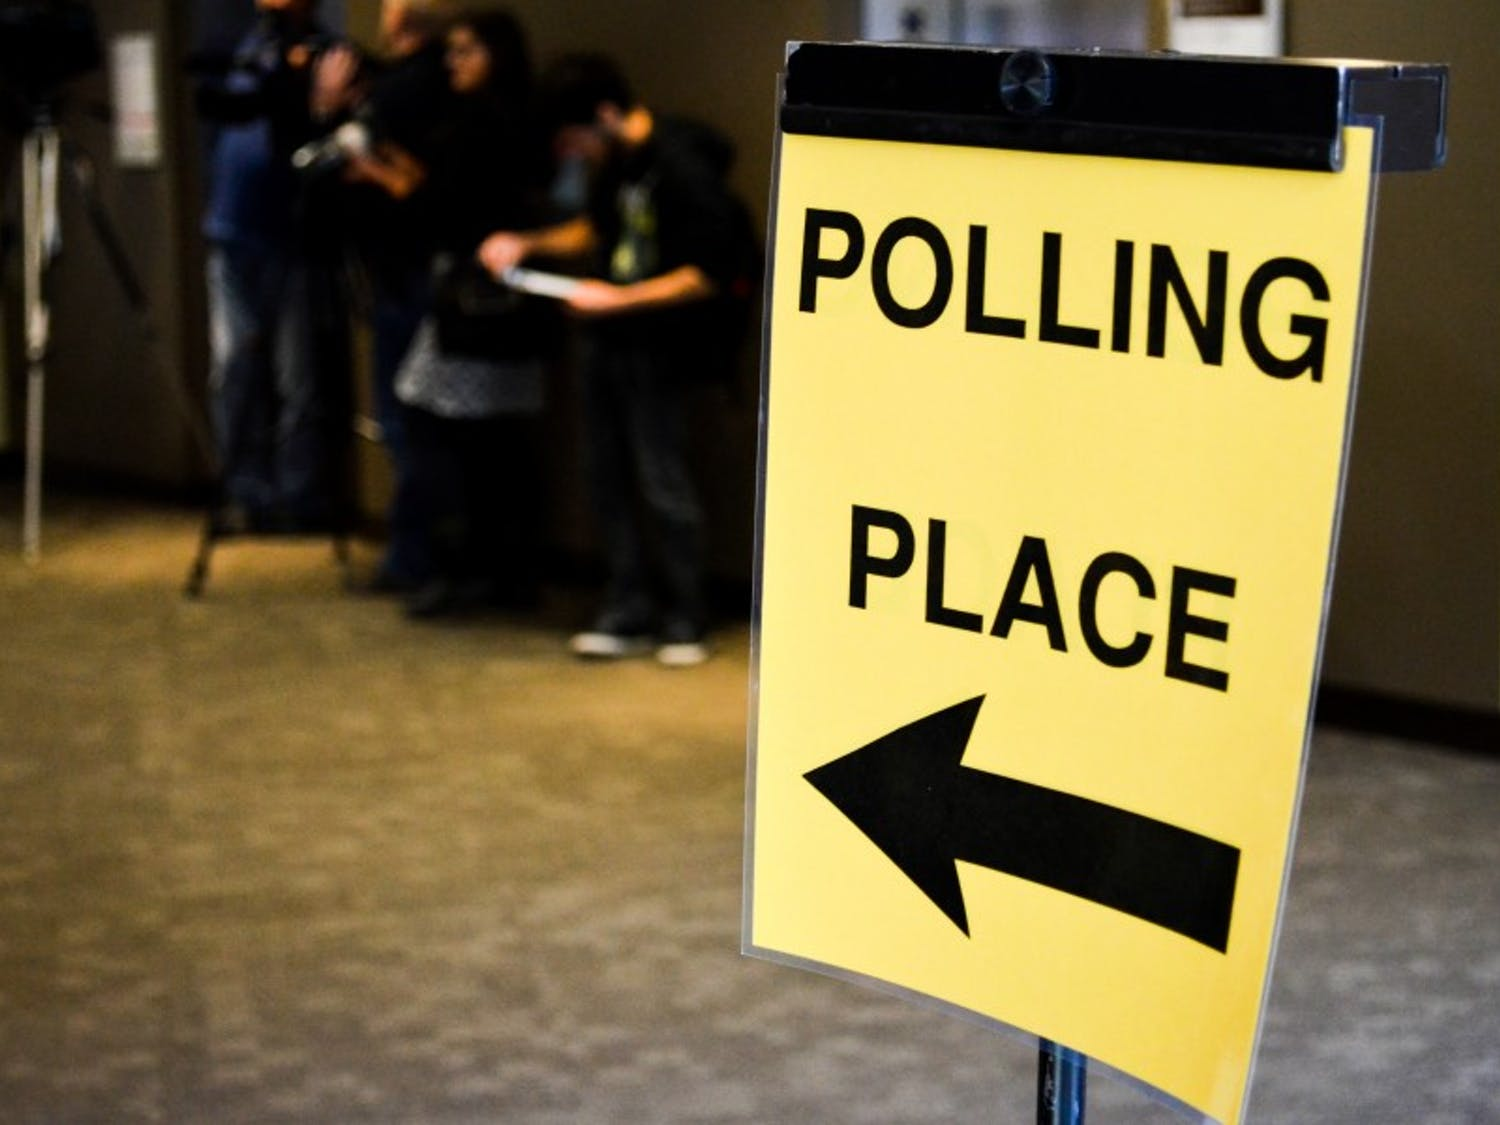 A record number of voters submitted absentee ballots in Madison ahead of the Nov. 8 election.